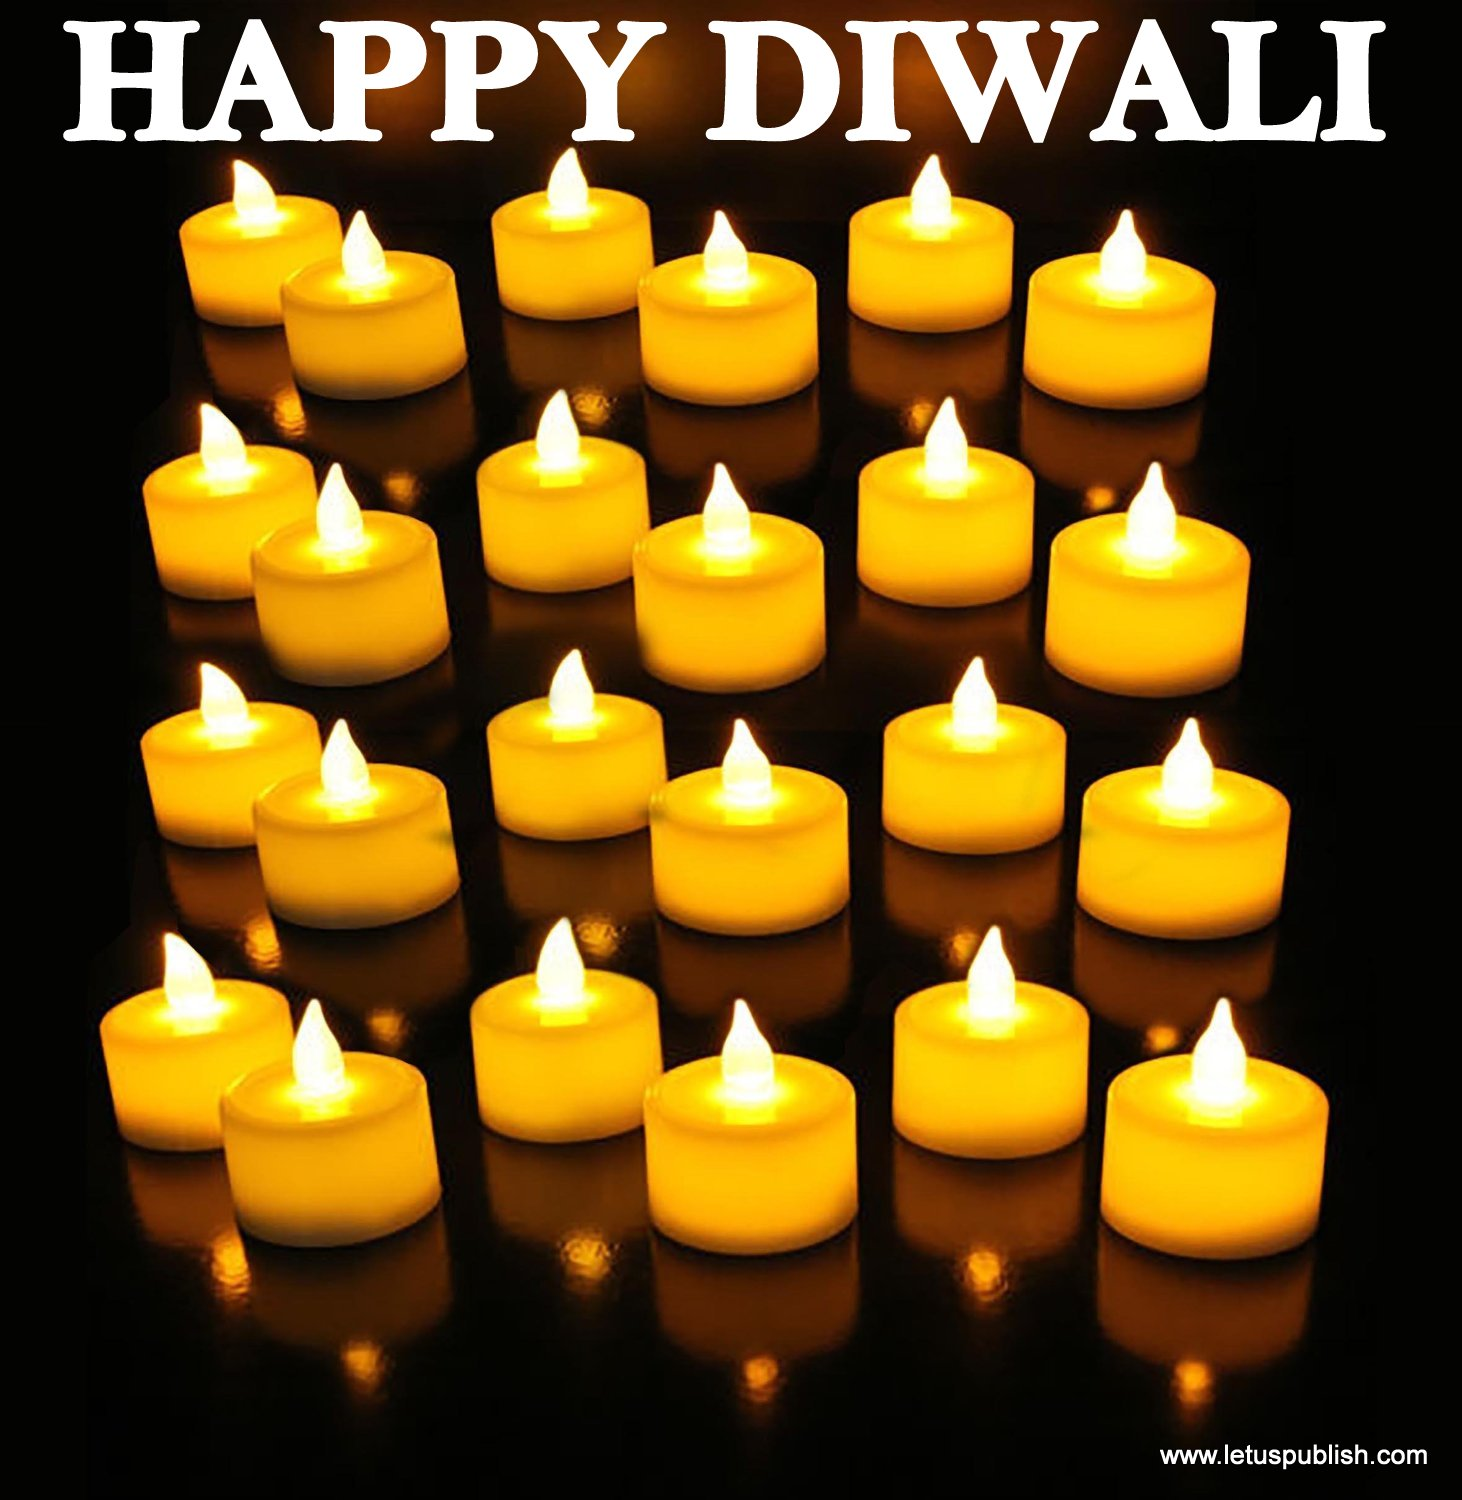 Diwali Wallpaper: Happy Diwali Wallpapers With Sms & Quotes